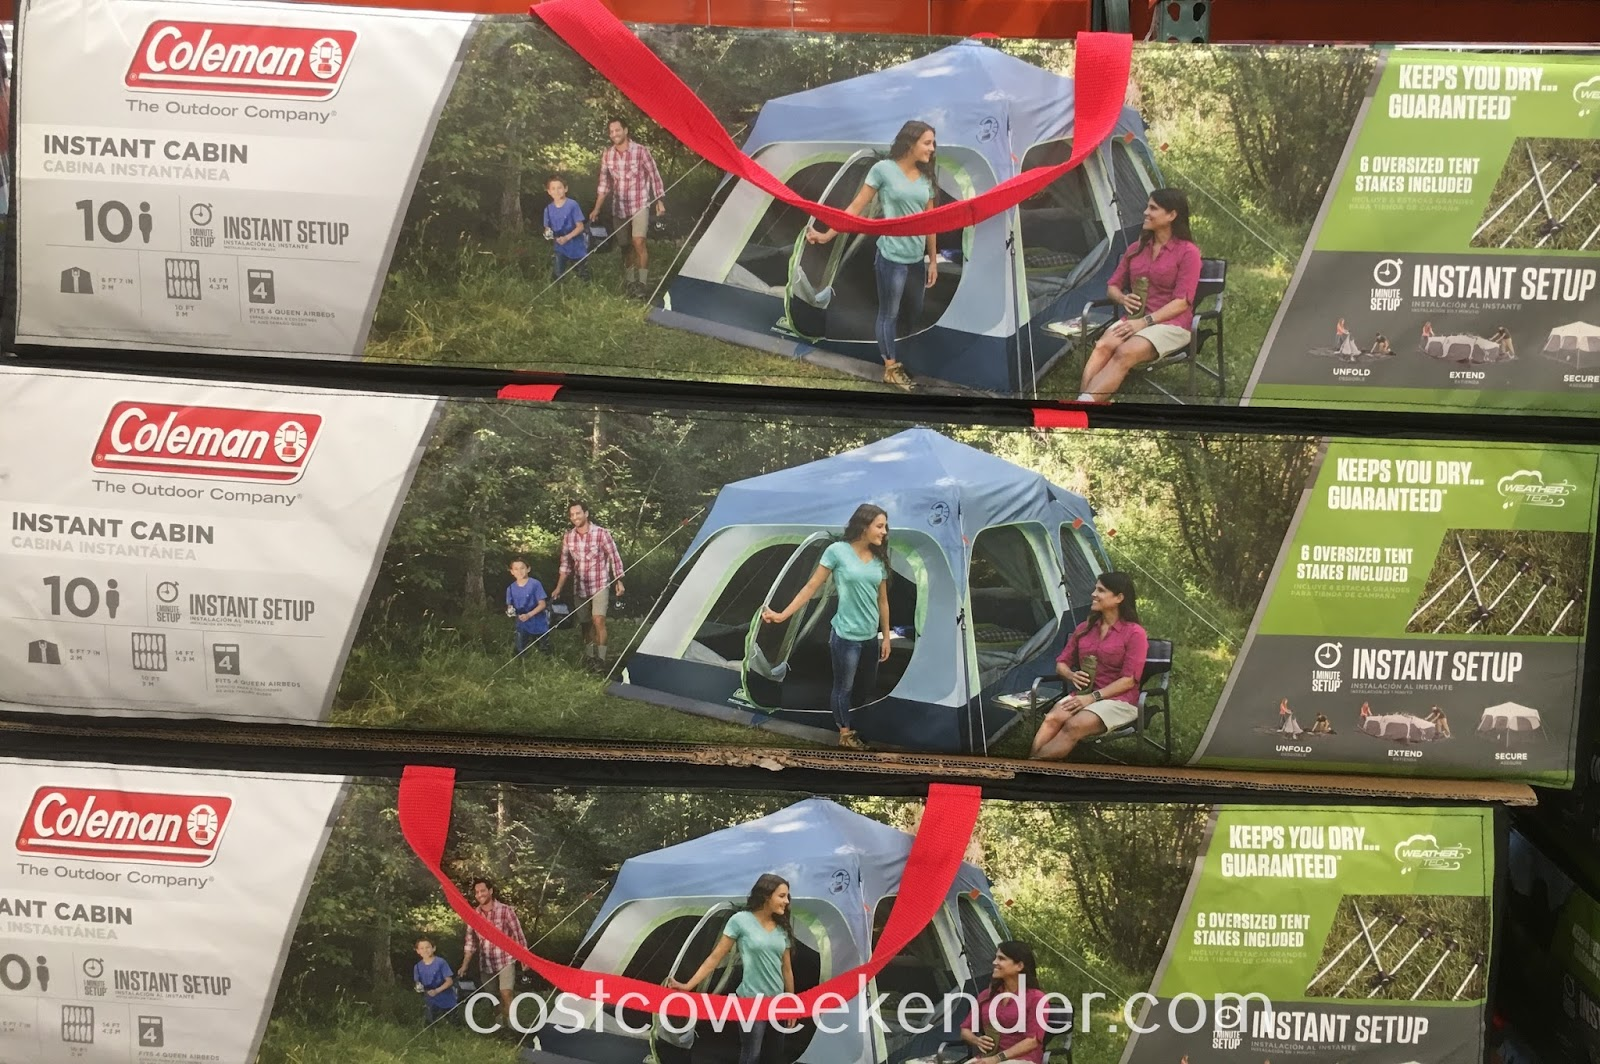 Ensure a good shelter when roughing it in the outdoors with the Coleman Instant Cabin Tent